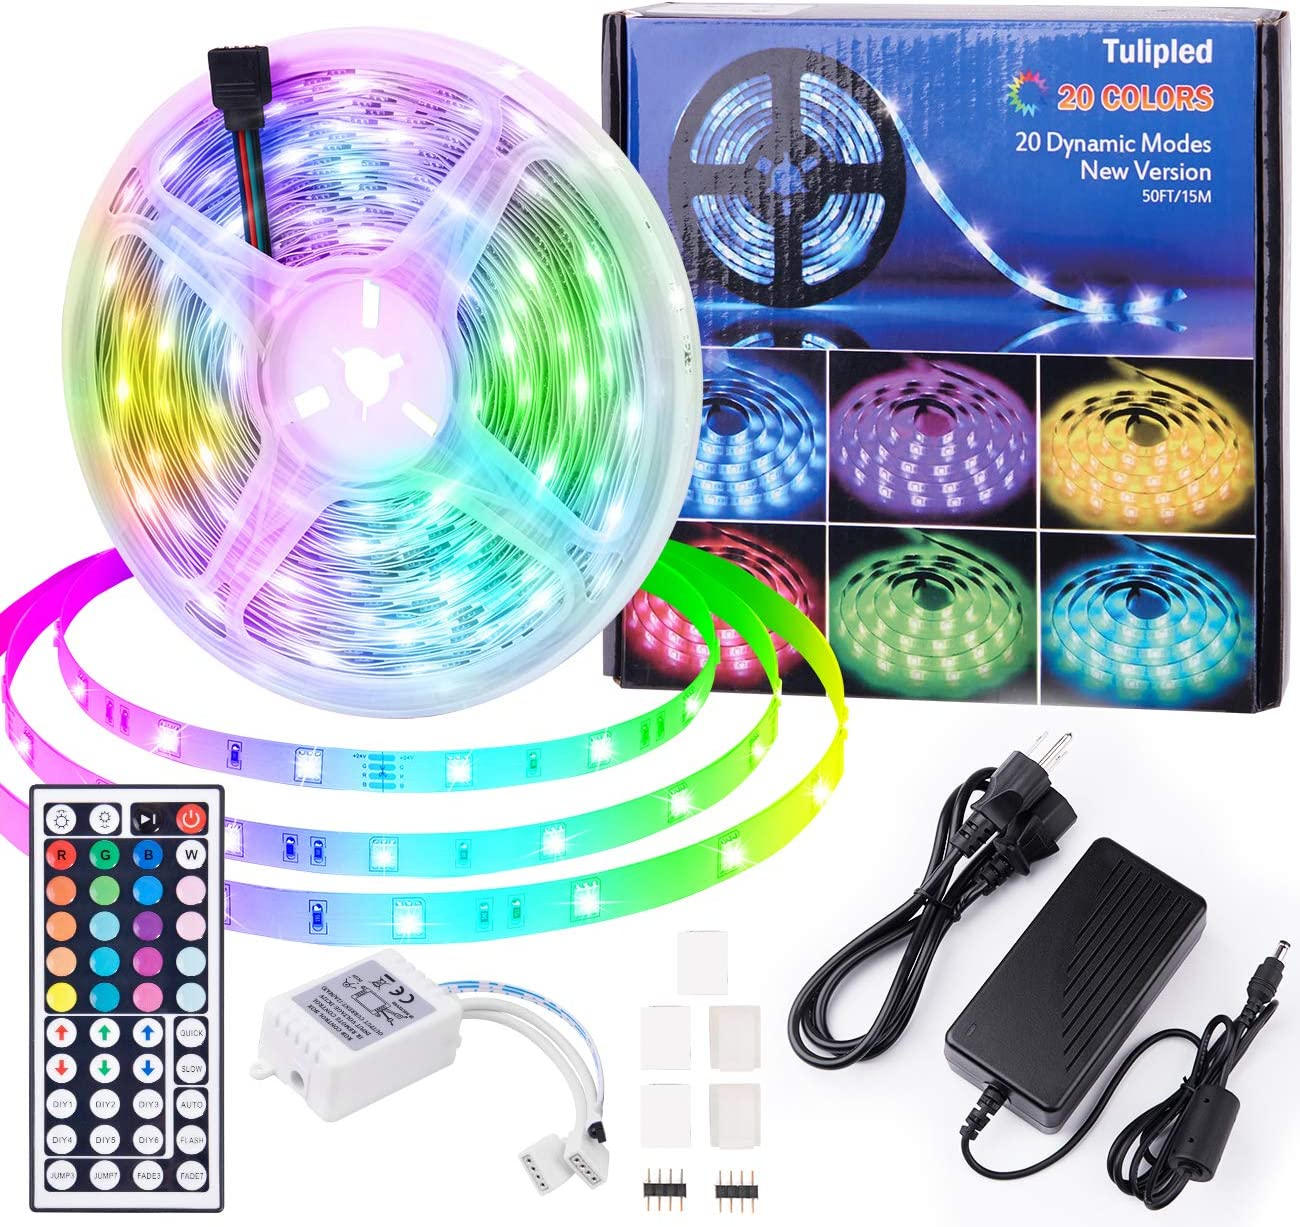 50ft Led Strip Lights Bedroom Decor Color Changing 5050 RGB Luces Led para Decoracion Habitacion 44-Key Remote Power Supply Non-Waterproof Led Rope Lights for Bar Cool Stuff for Your Rooms